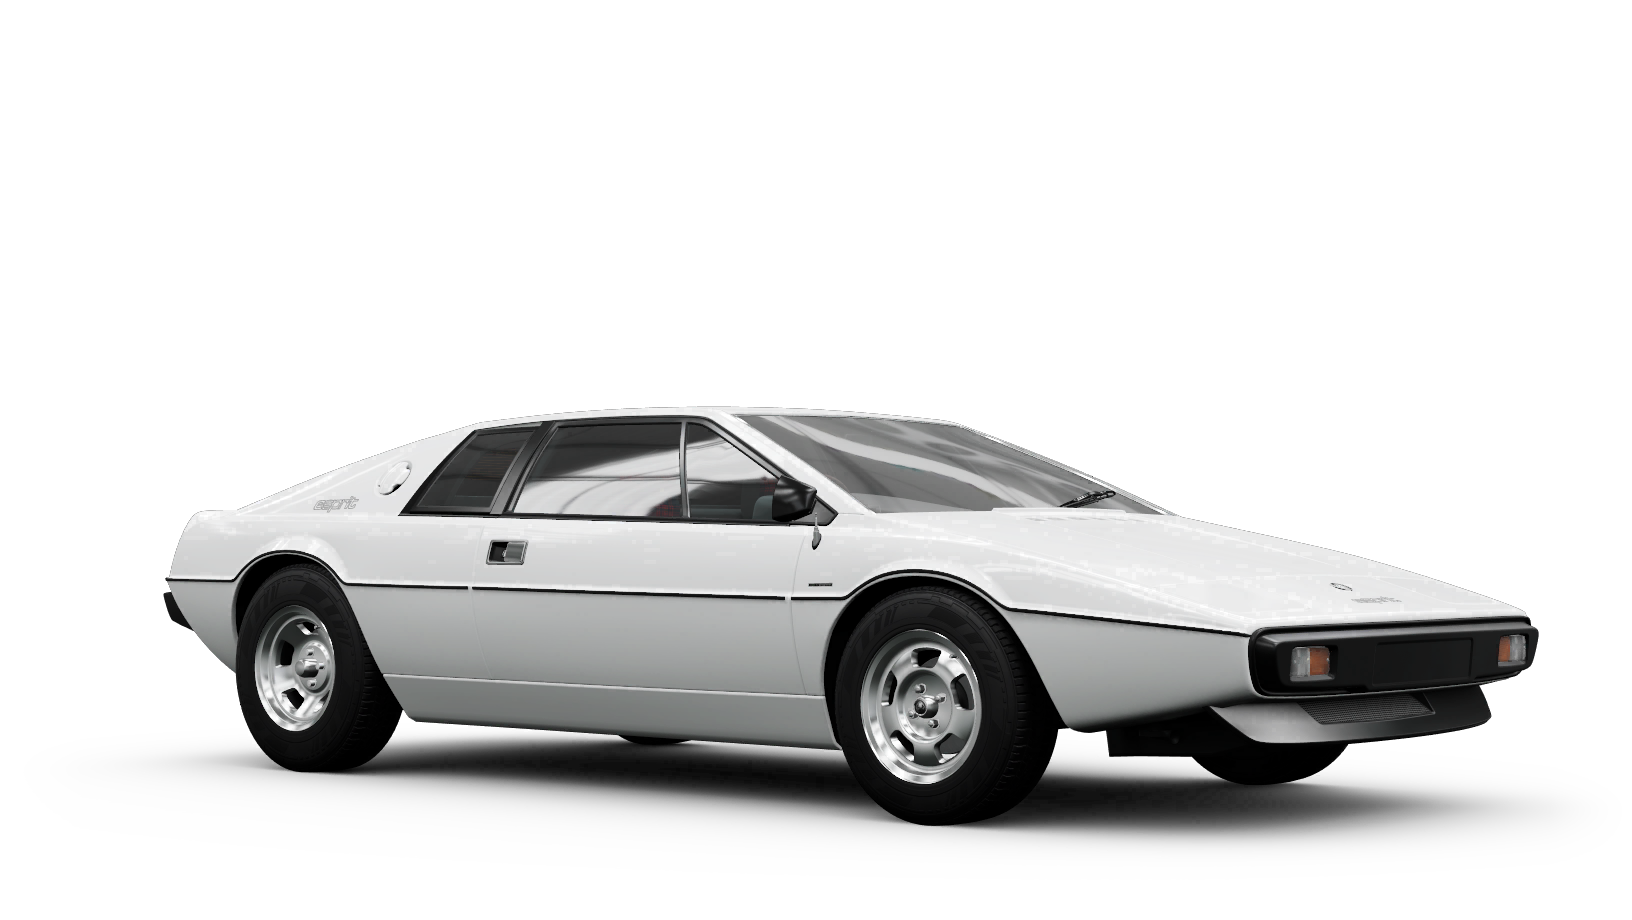 James Bond Edition Lotus Esprit S1